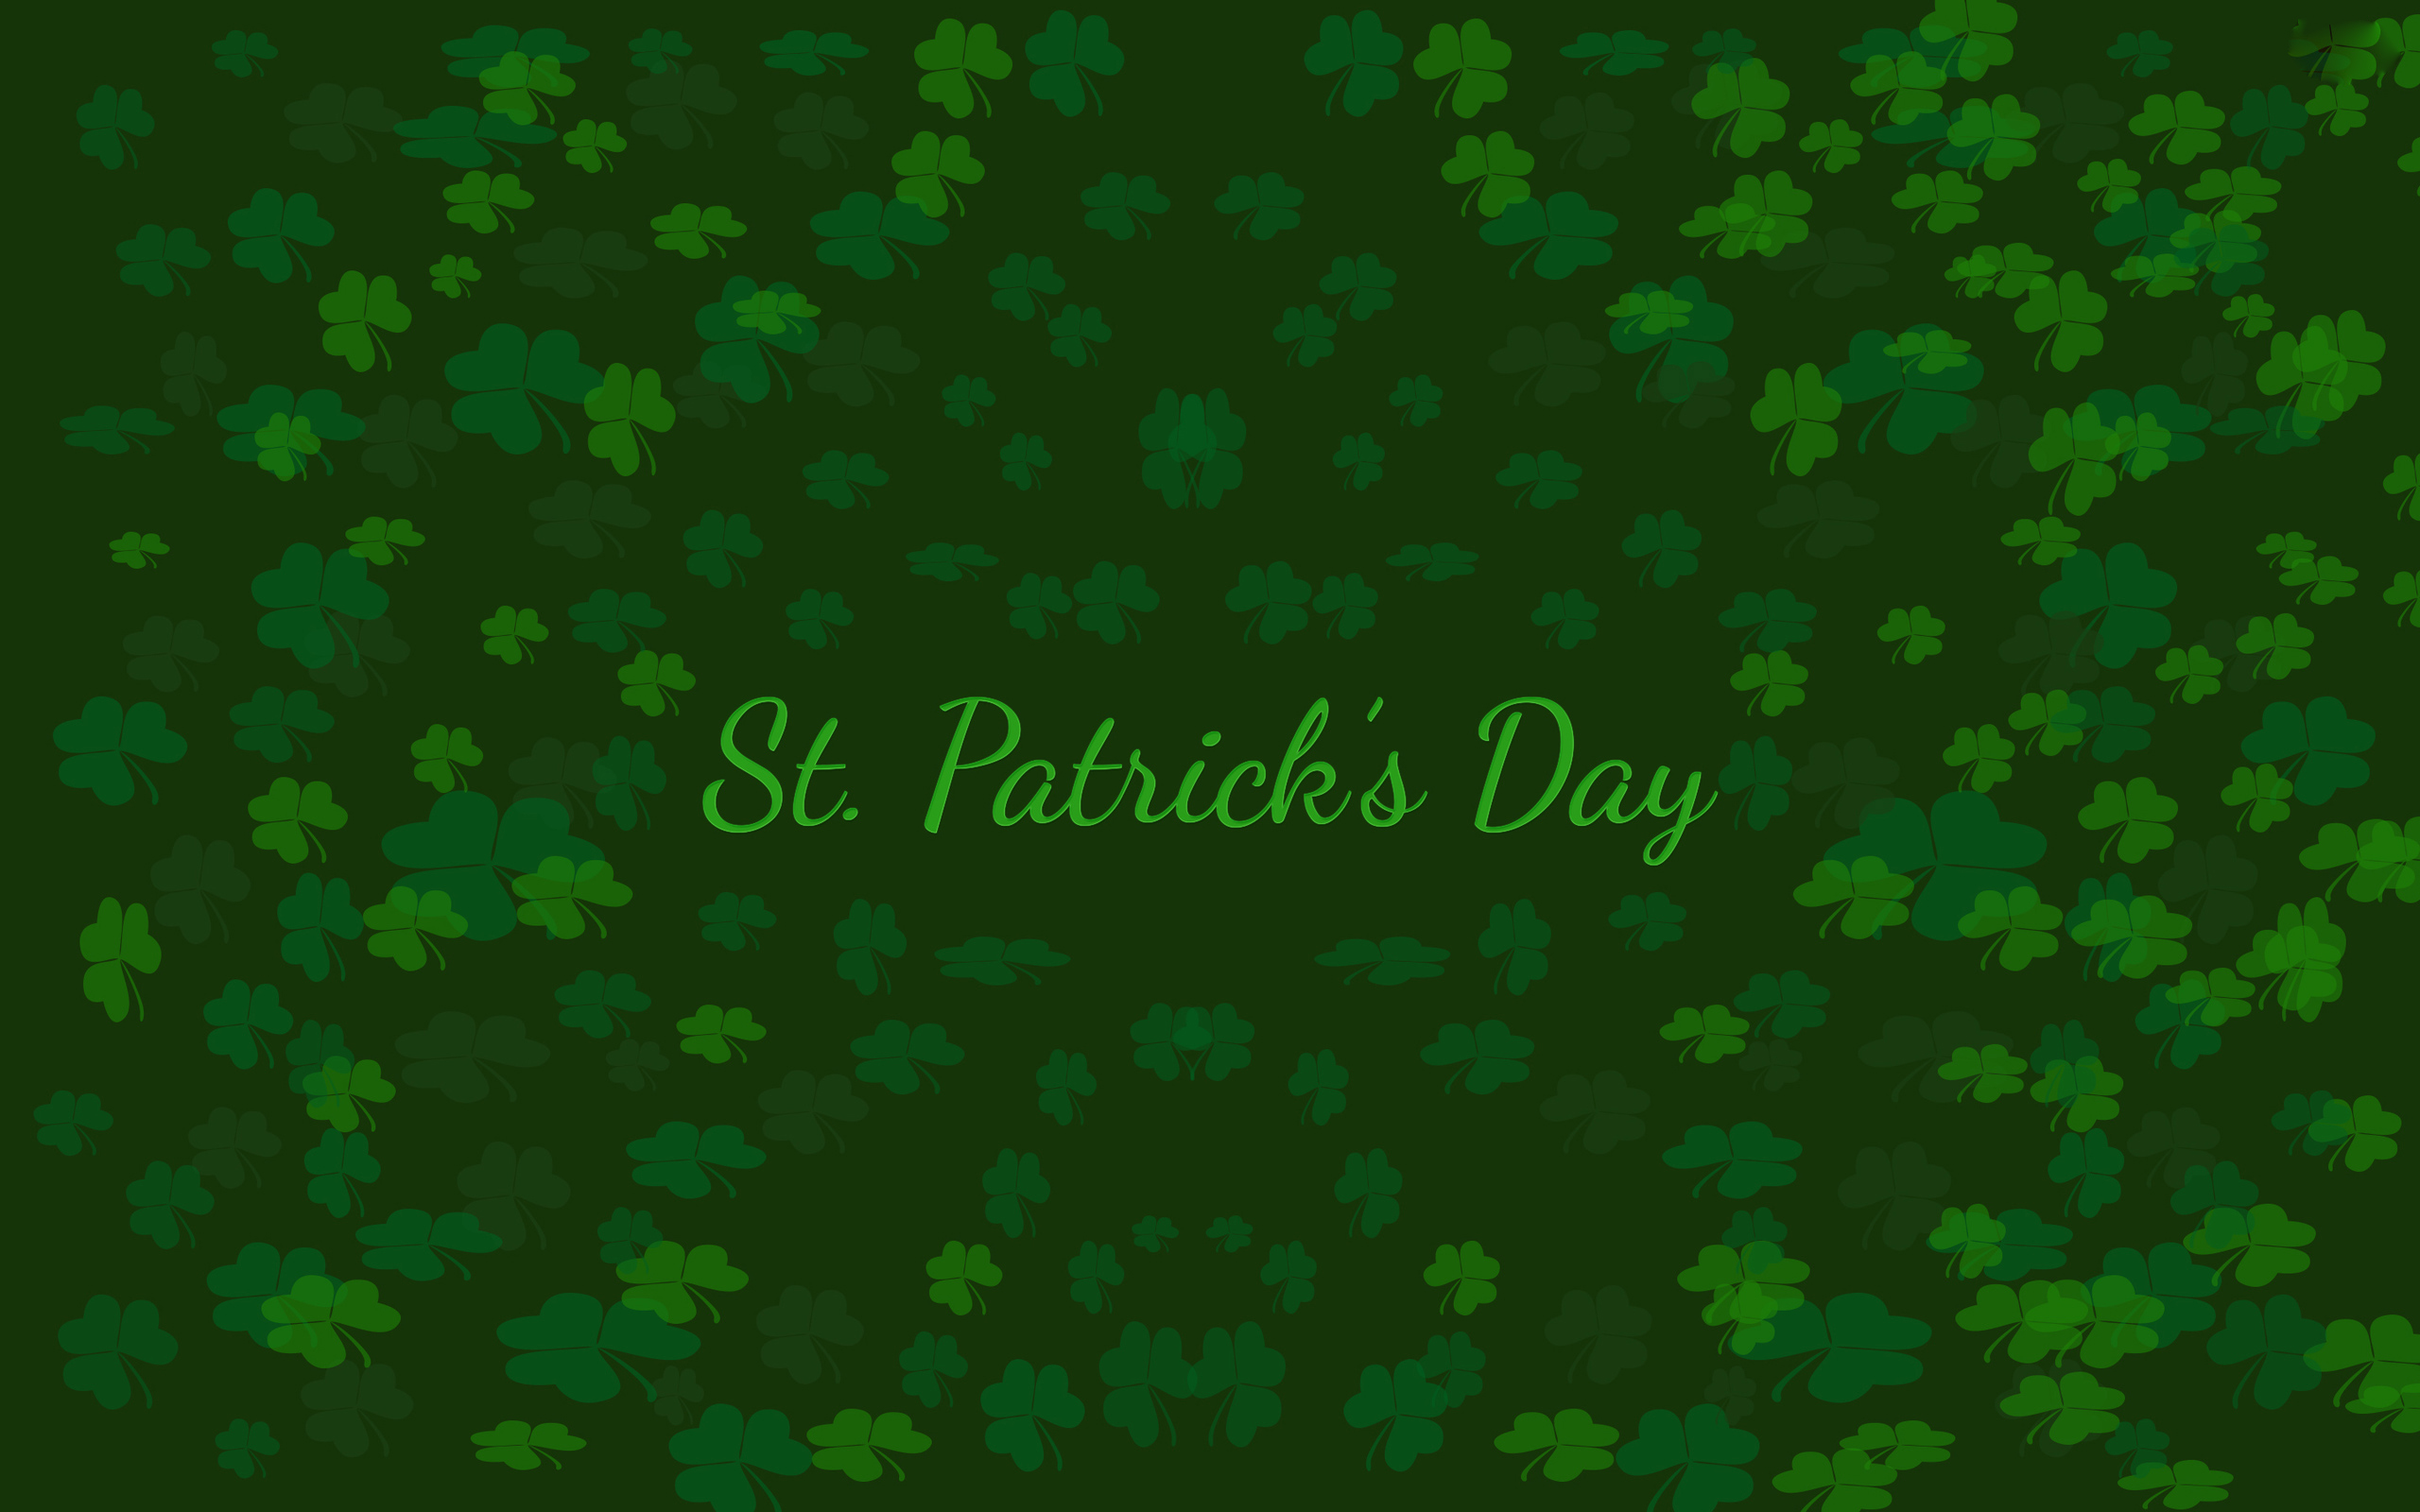 St Patricks Day Wallpapers HD Wallpapercraft 2560x1600